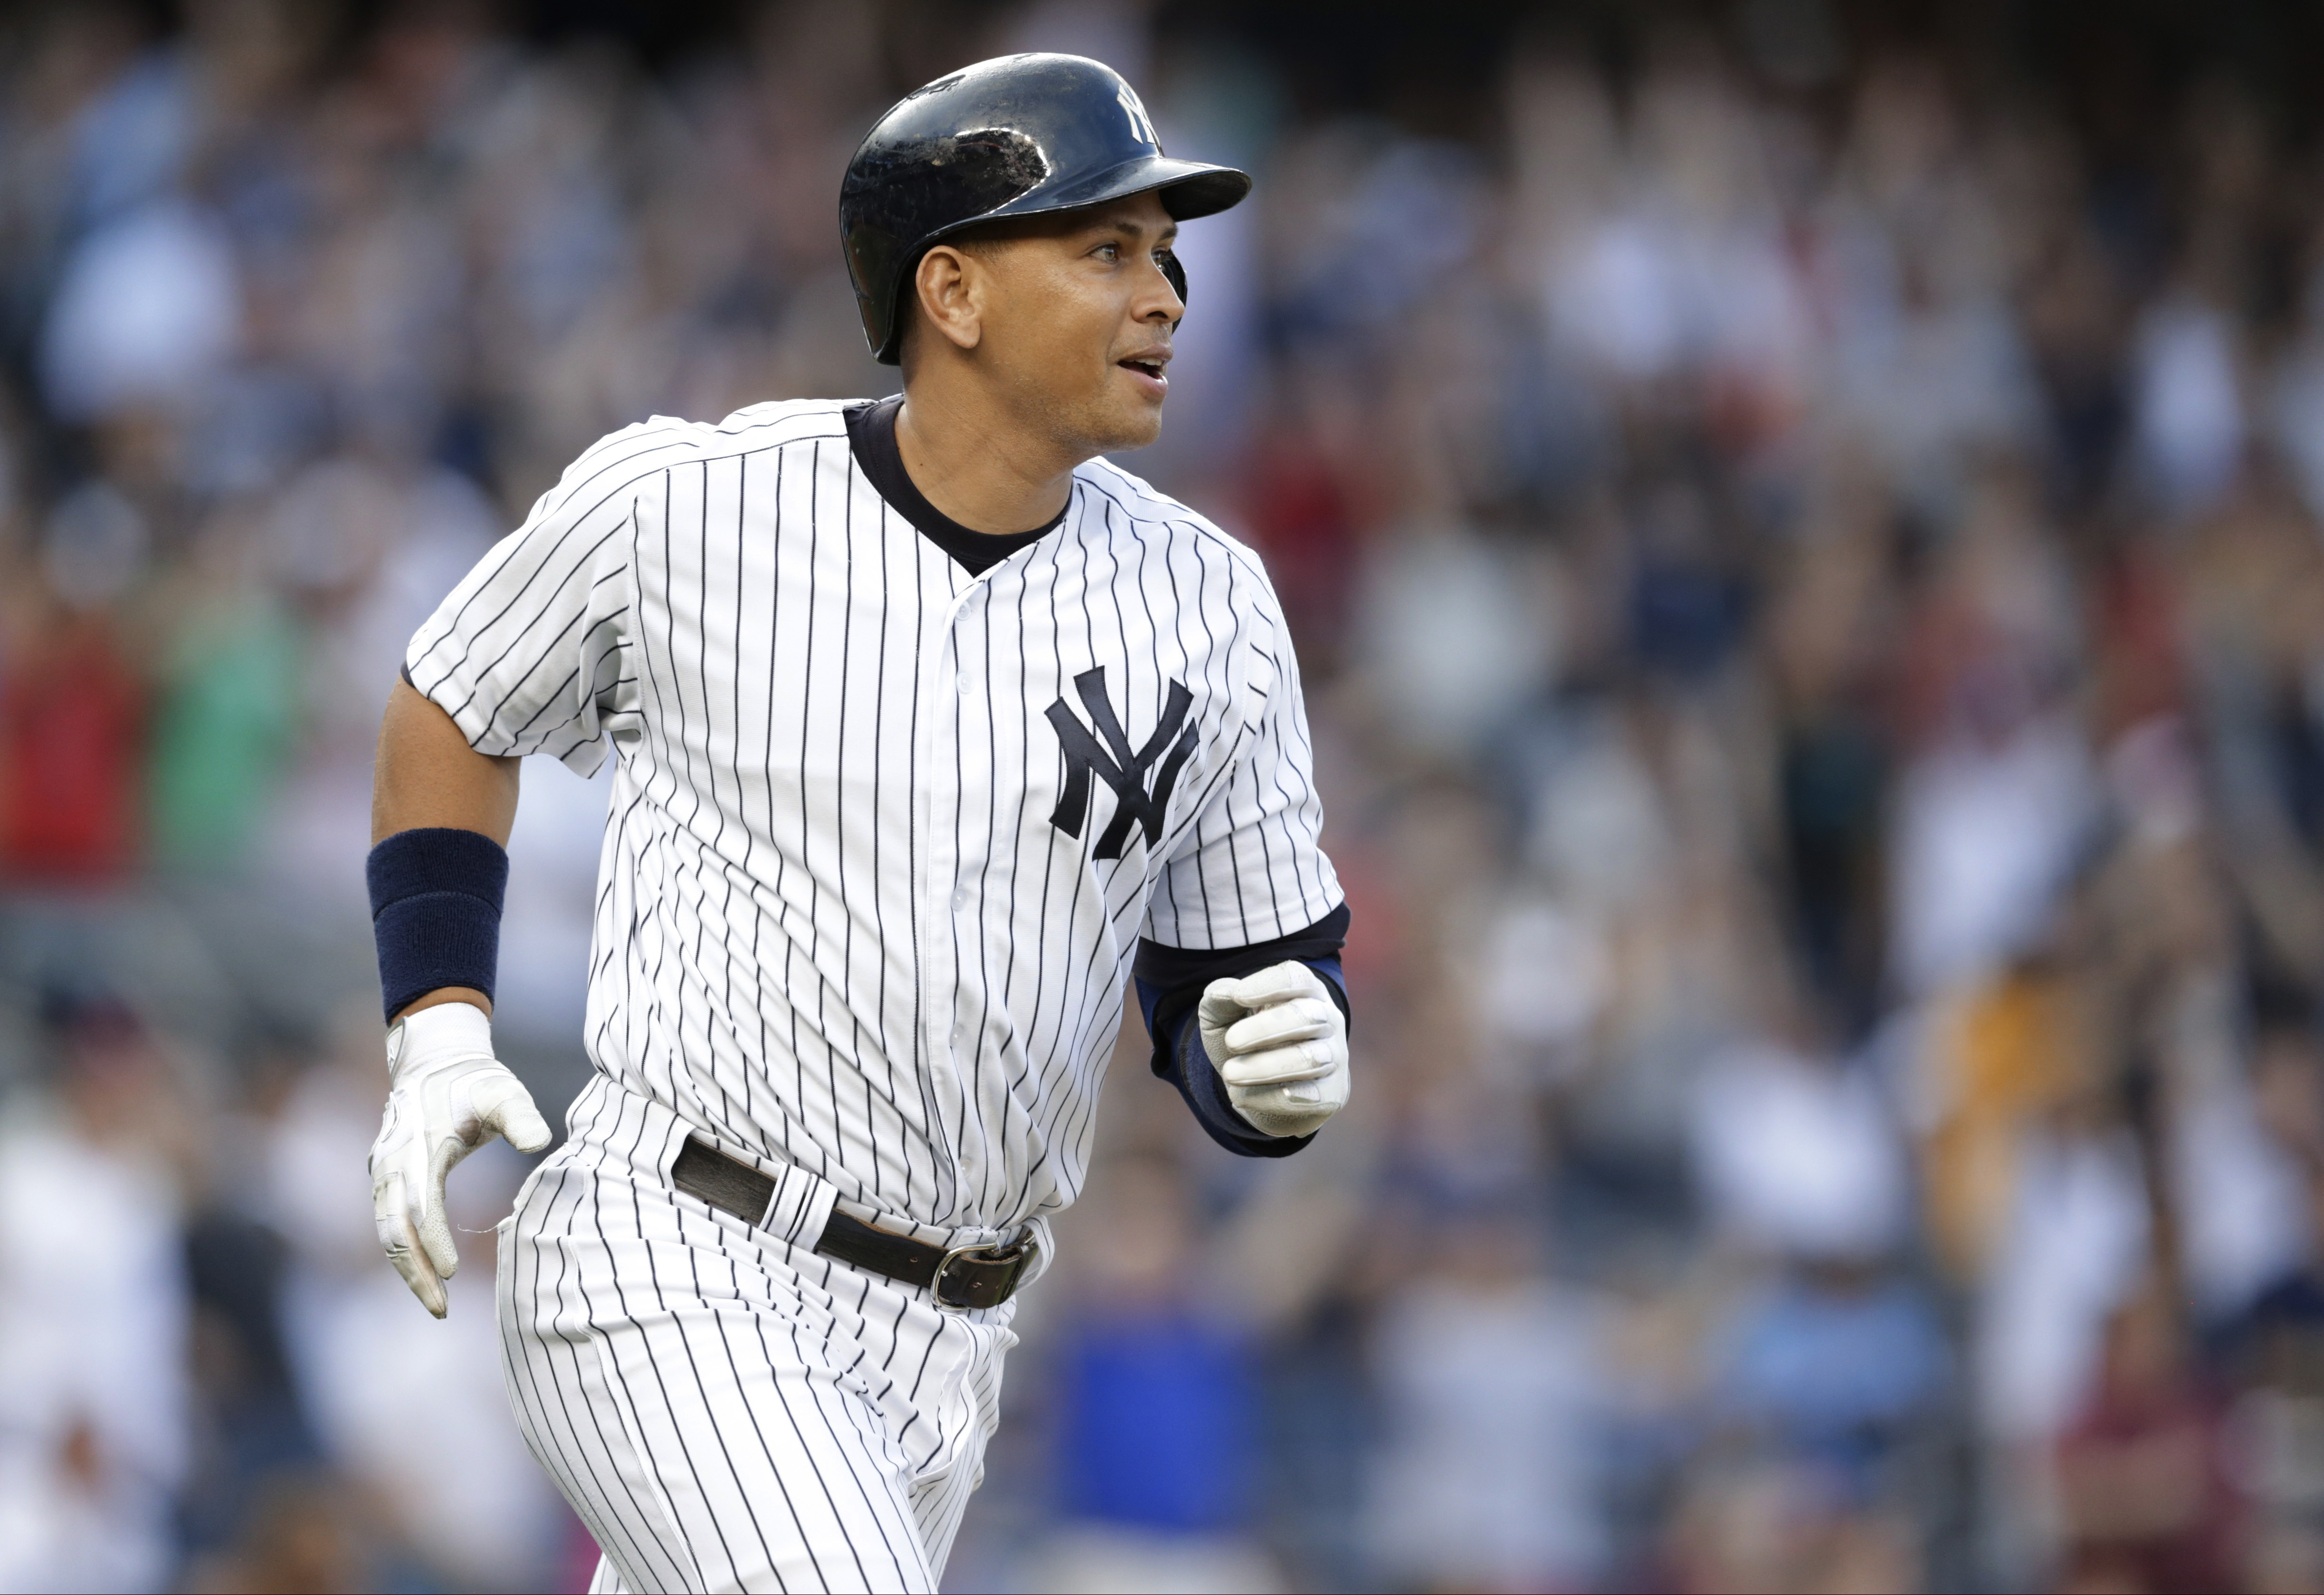 New York Yankees' Alex Rodriguez watches his home run, his 3,000th career hit, during the first inning of a baseball game against the Detroit Tigers on Friday, June 19, 2015, in New York. (AP Photo/Frank Franklin II)